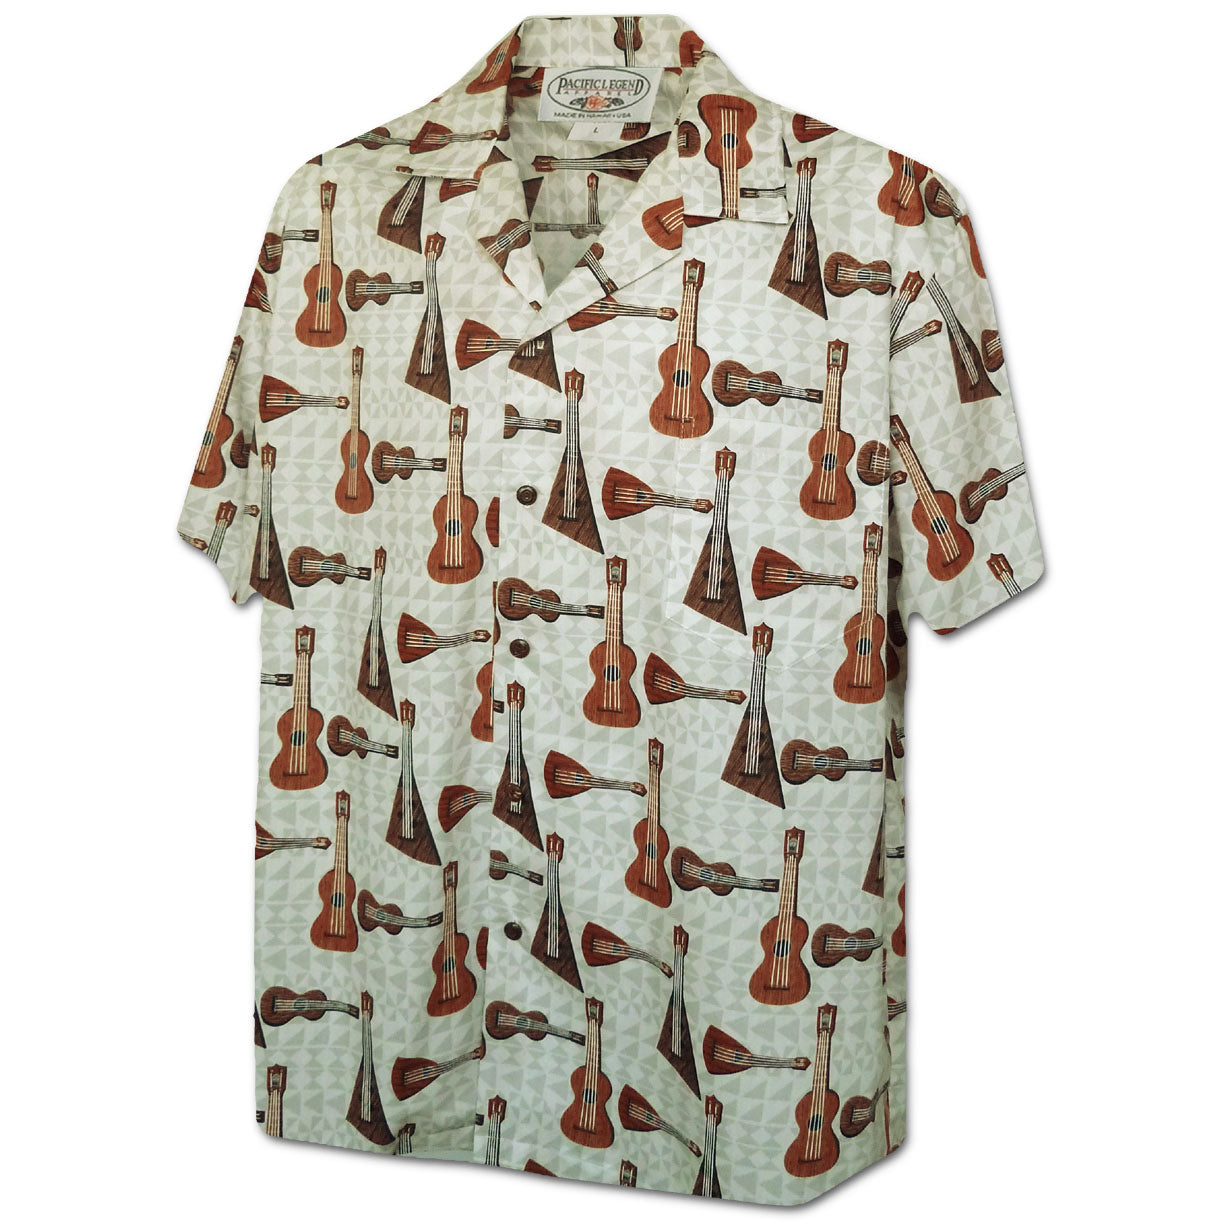 Ukulele Jamster Cream Hawaiian Shirt